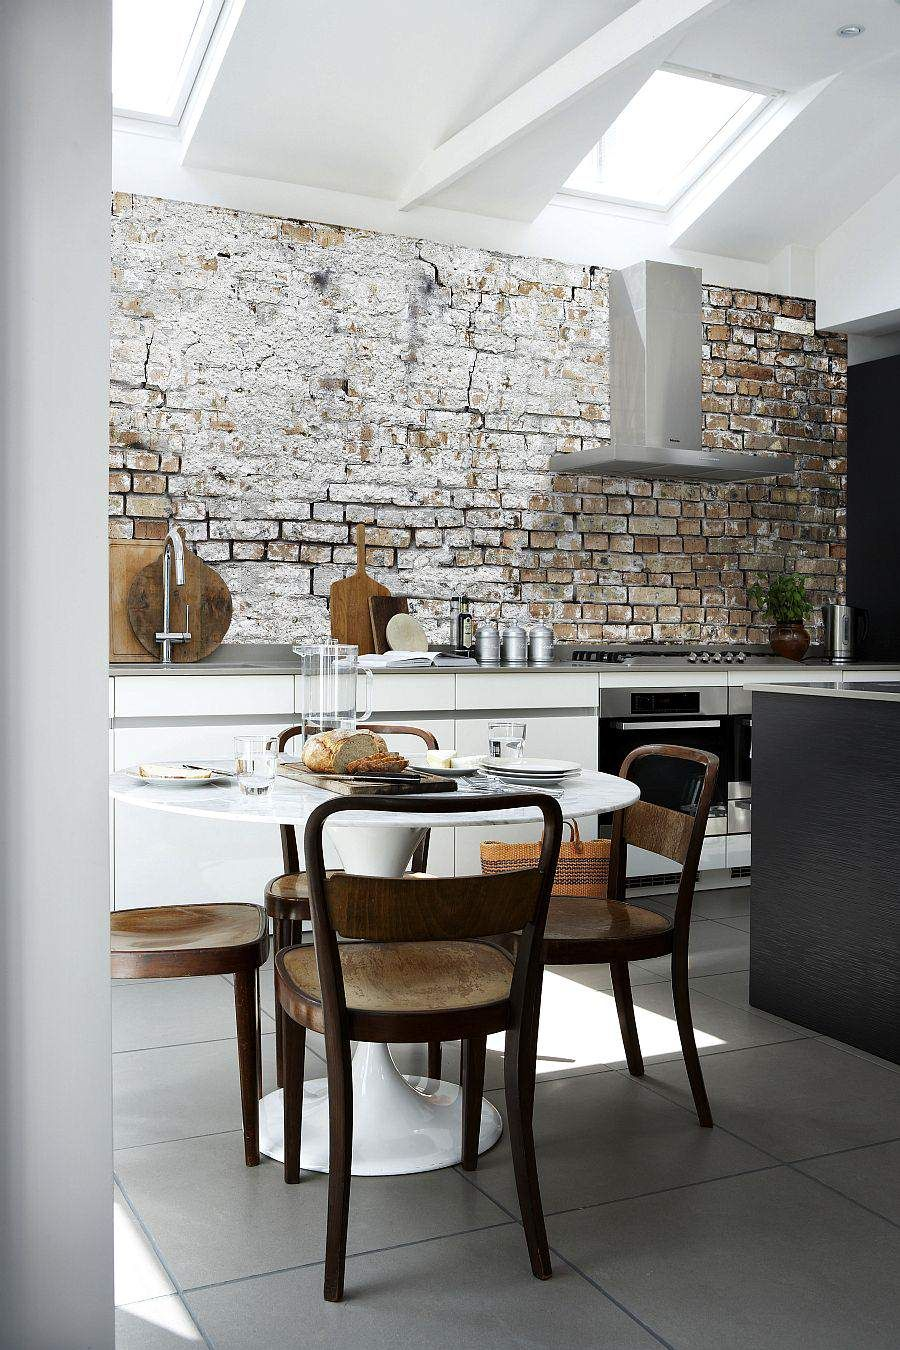 Modern kitchen room design with rustic brick stone wall murral also